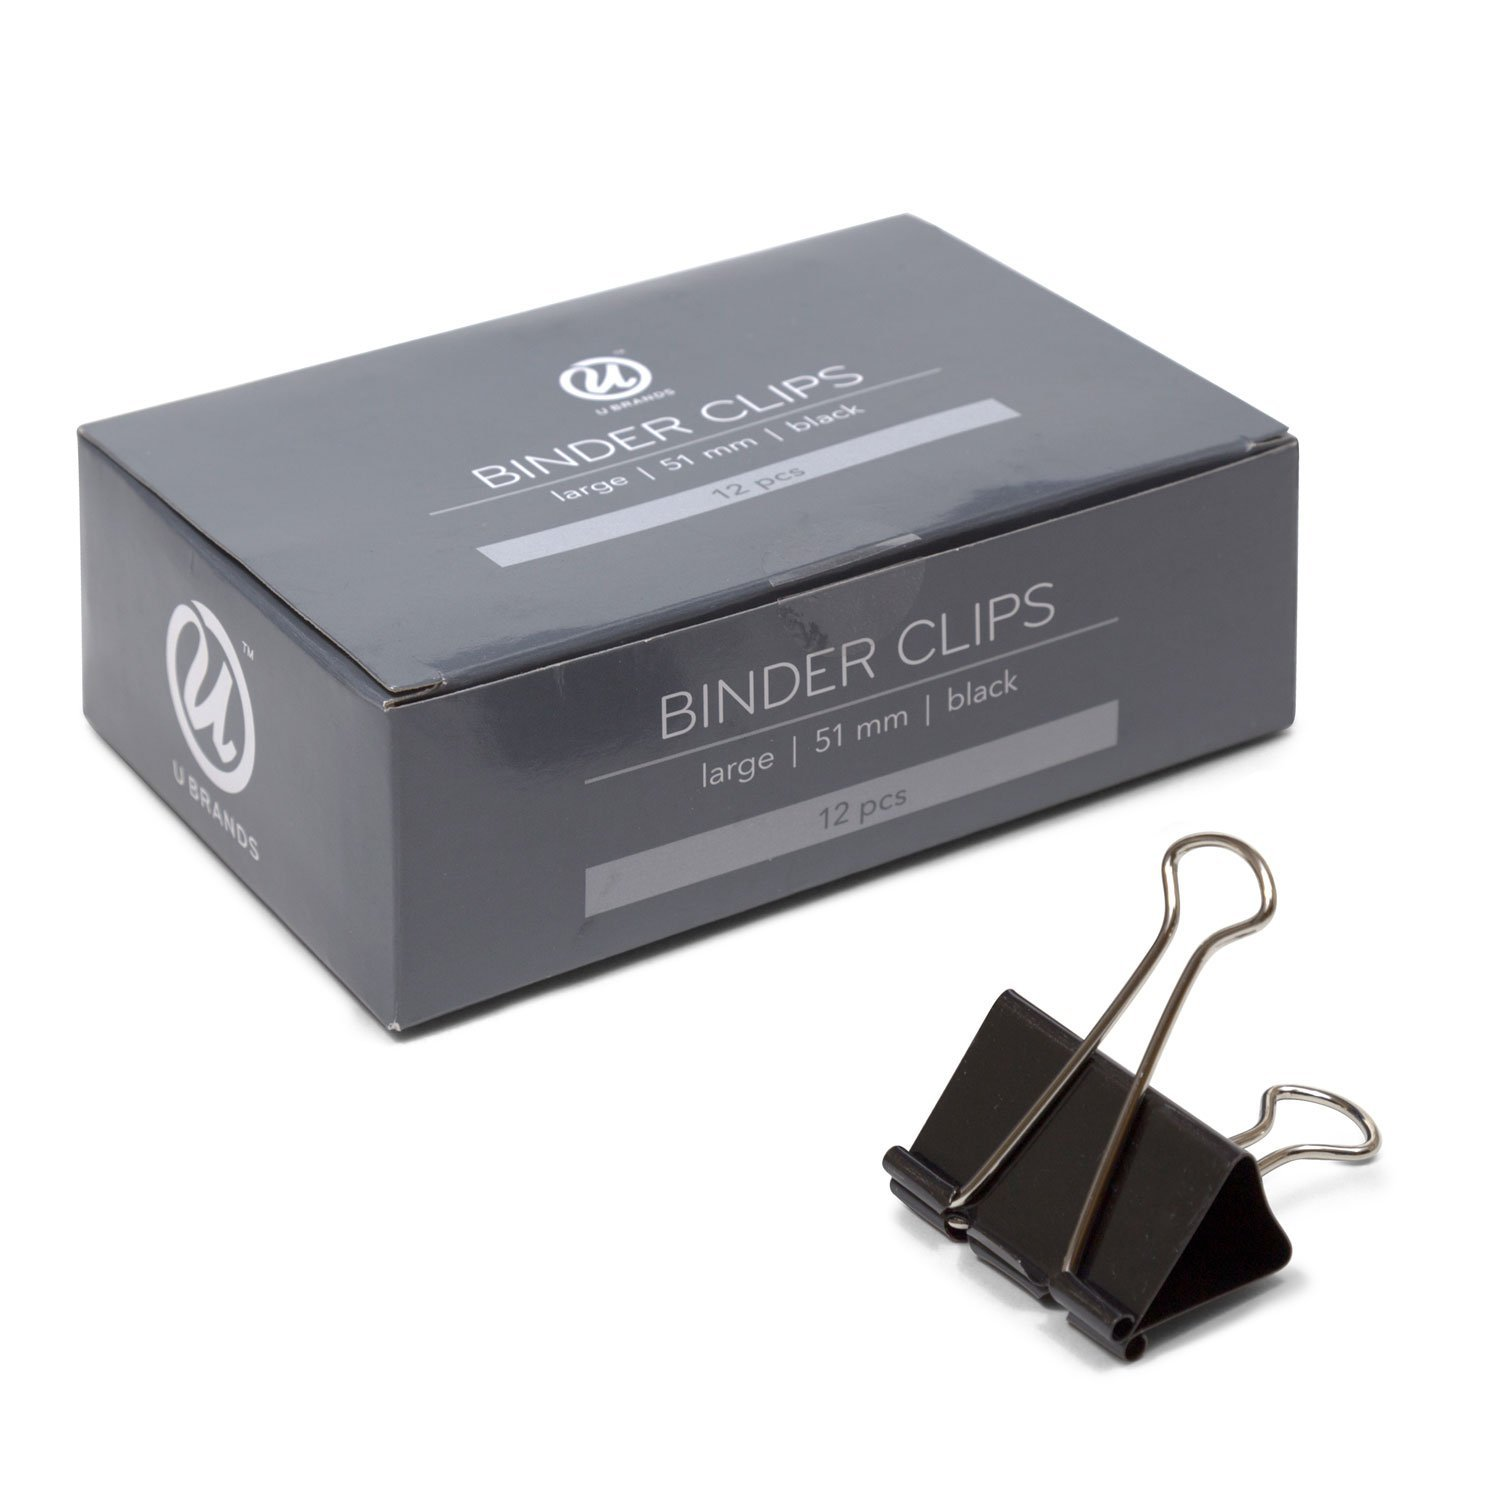 "U Brands Binder Clips, Large 2"" Capacity, Black and Silver Steel, 12 Ct"